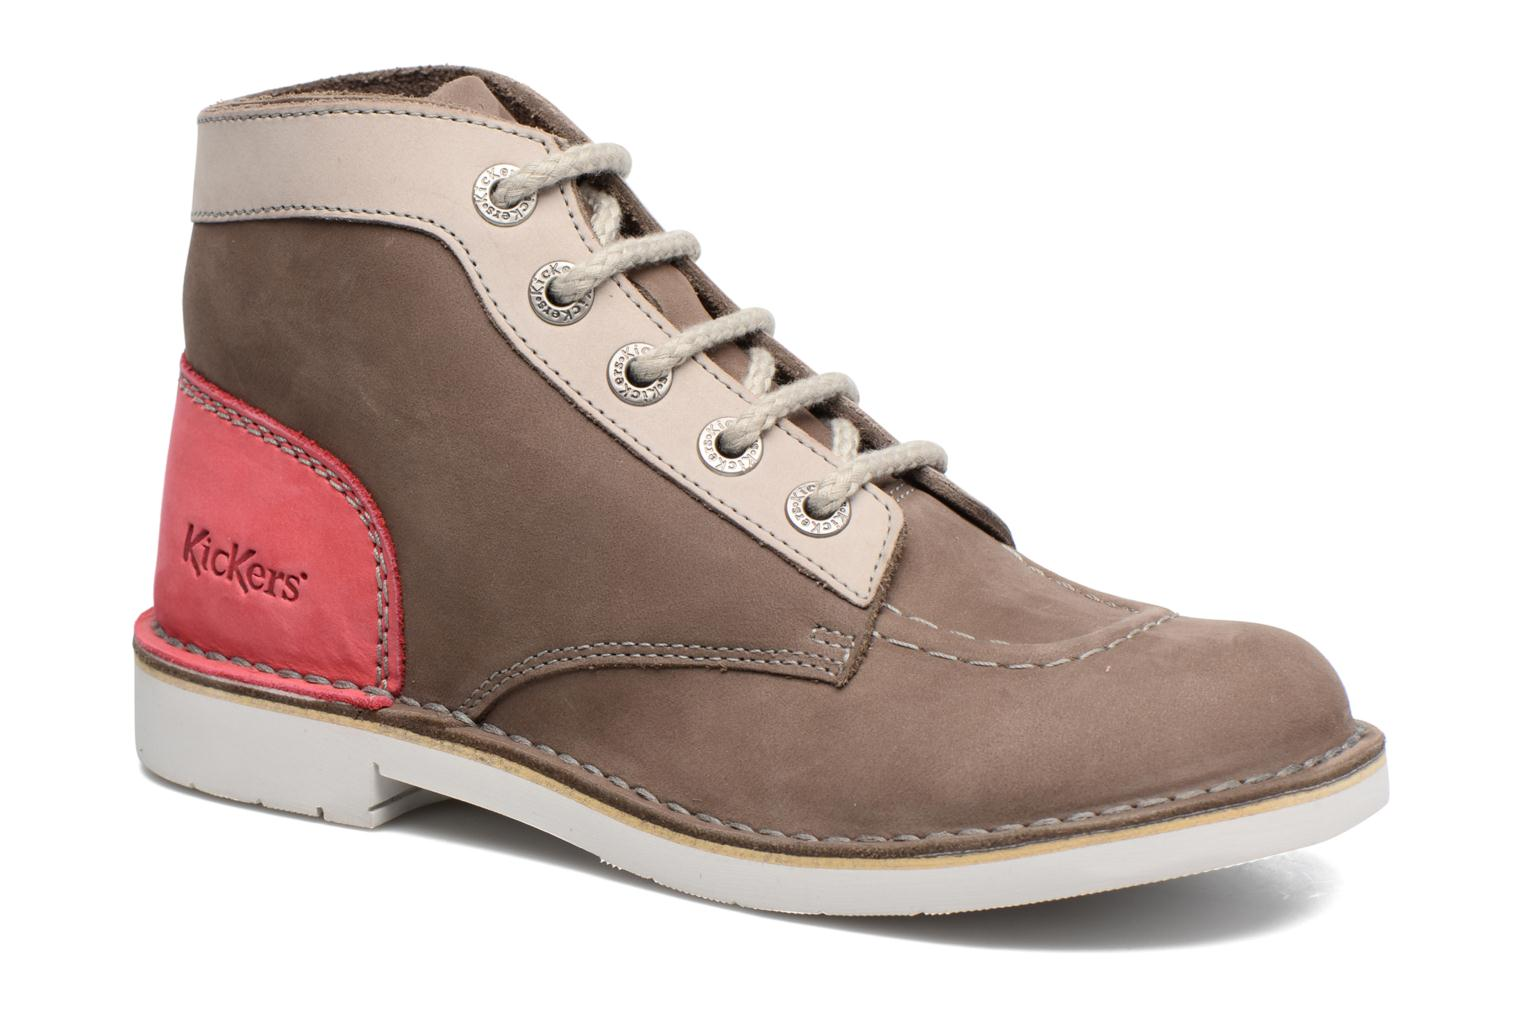 Kick col Marron Clair Fuschia